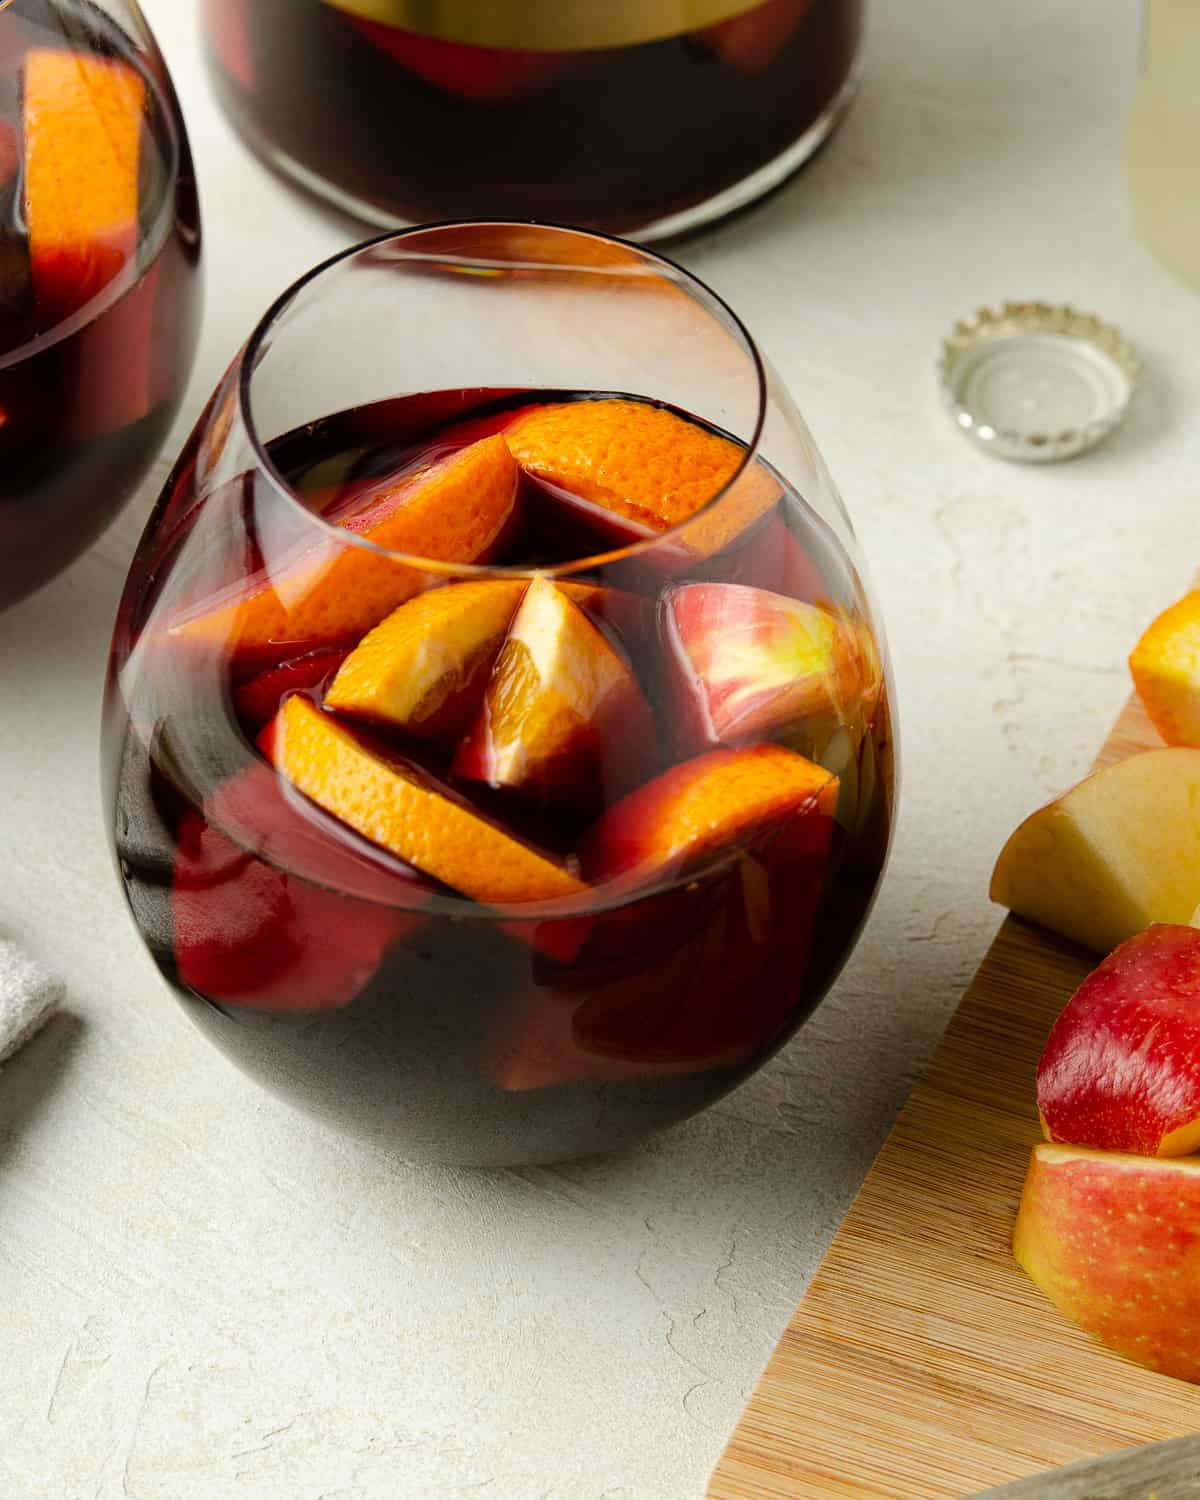 A glass of red wine sangria with apples and oranges.